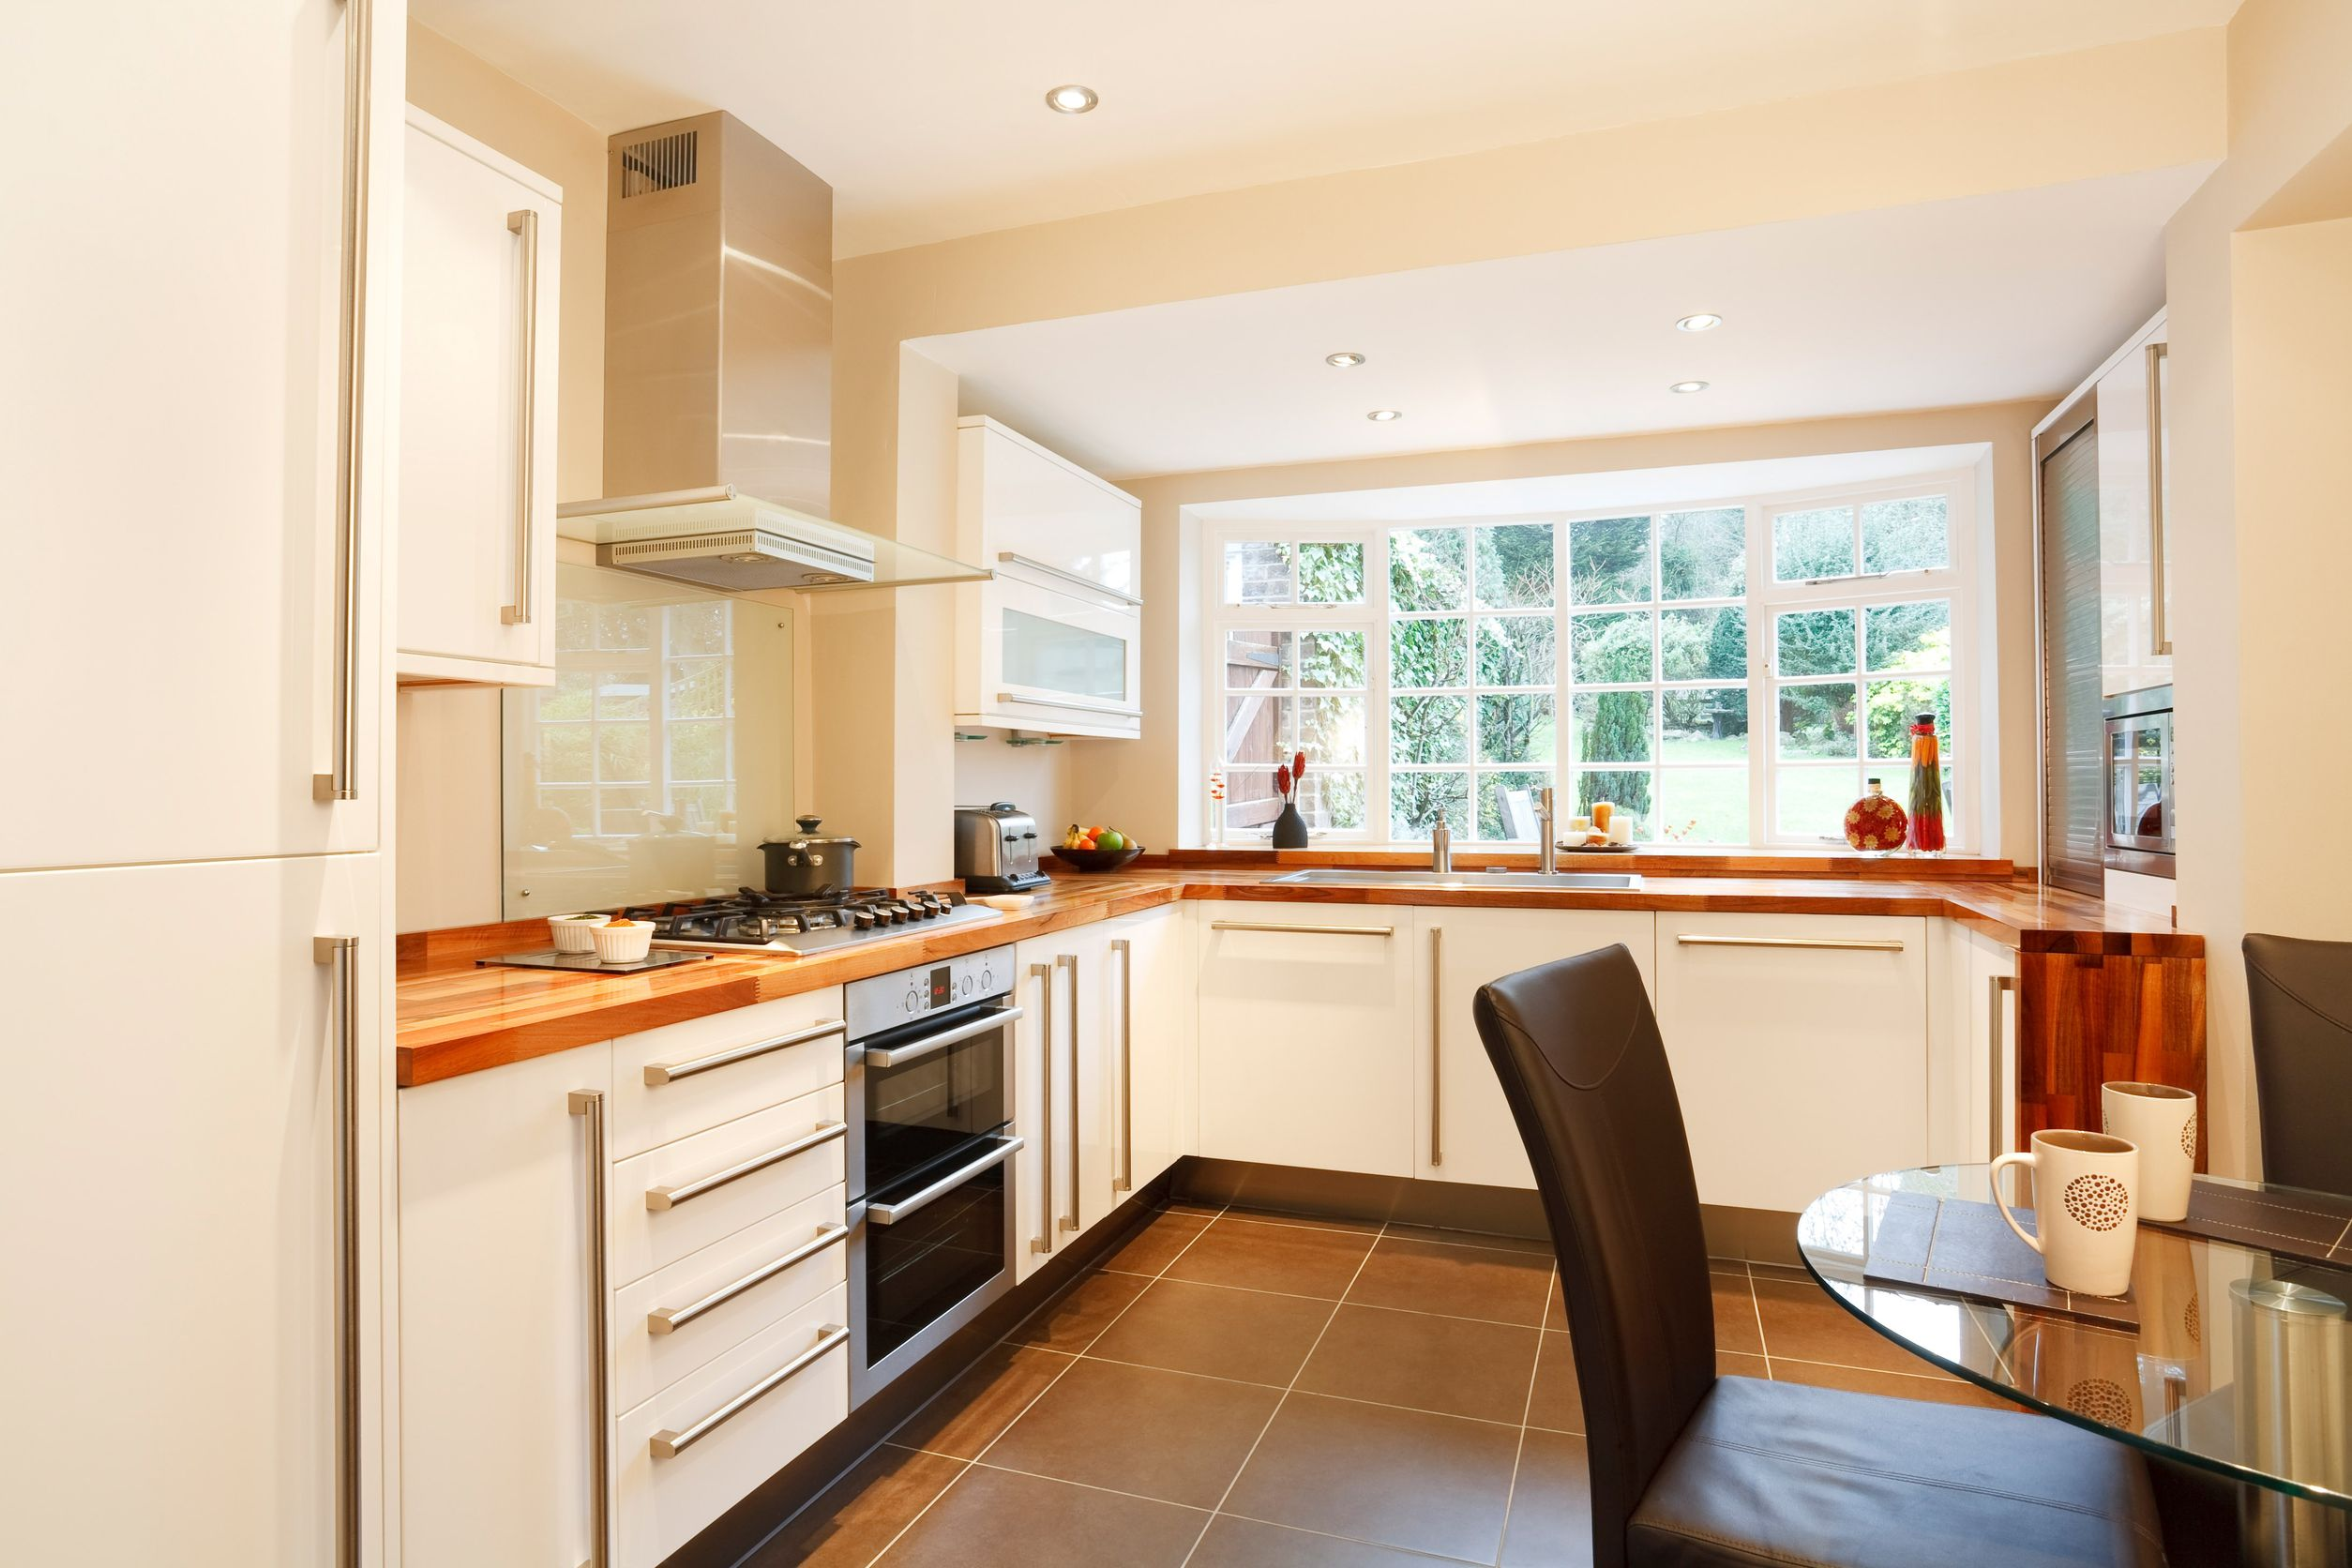 Tips For Planning Your Kitchen Design